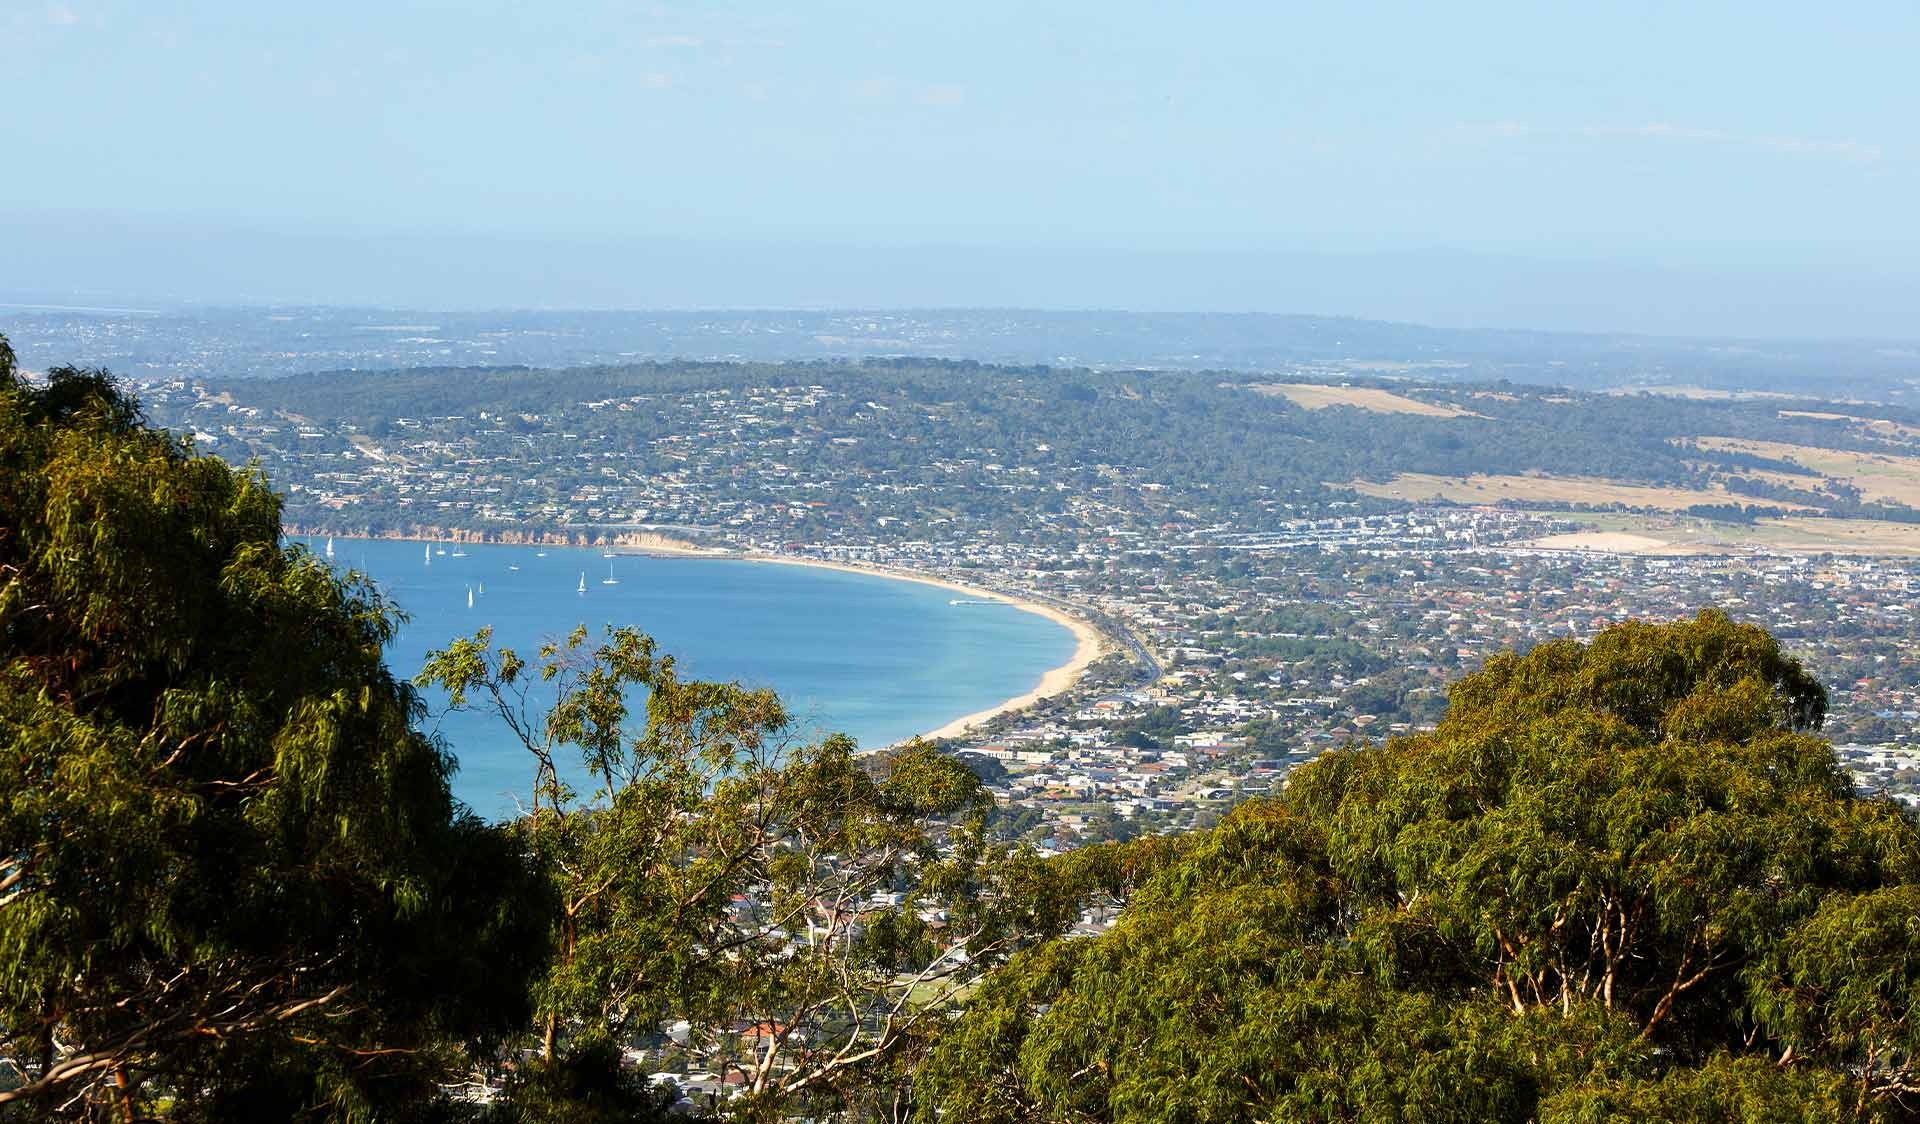 The view of Safety Beach and Port Phillip from the top of Arthurs Seat State Park.